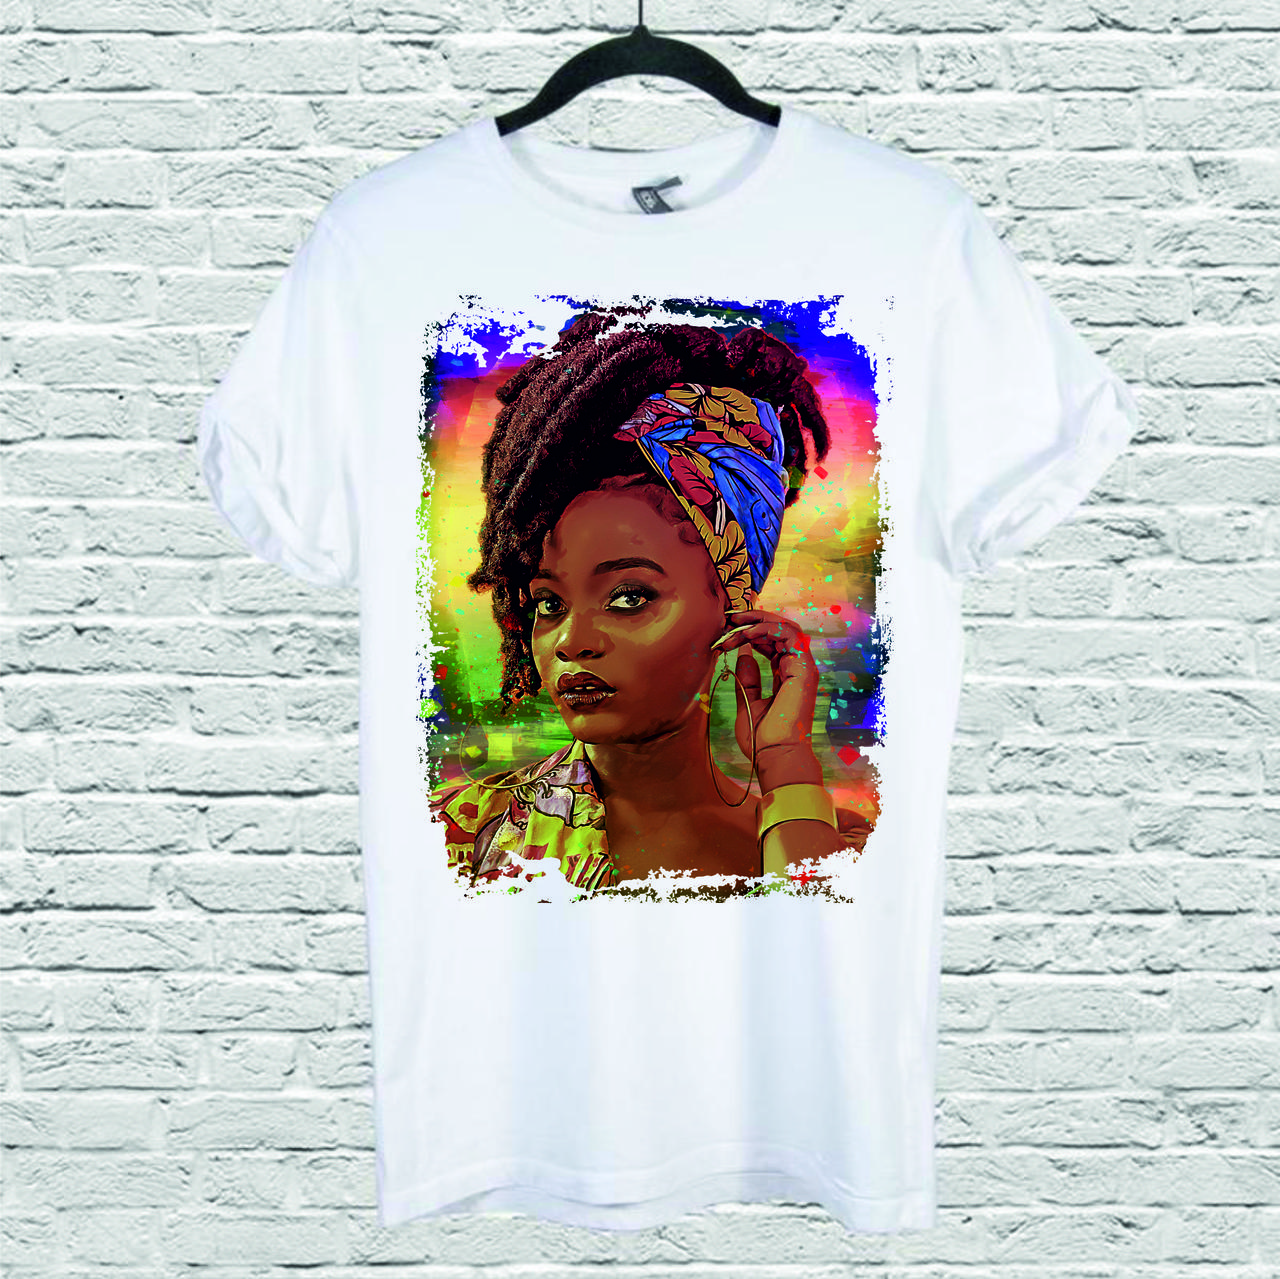 Футболка YOUstyle African girl 0111 L White